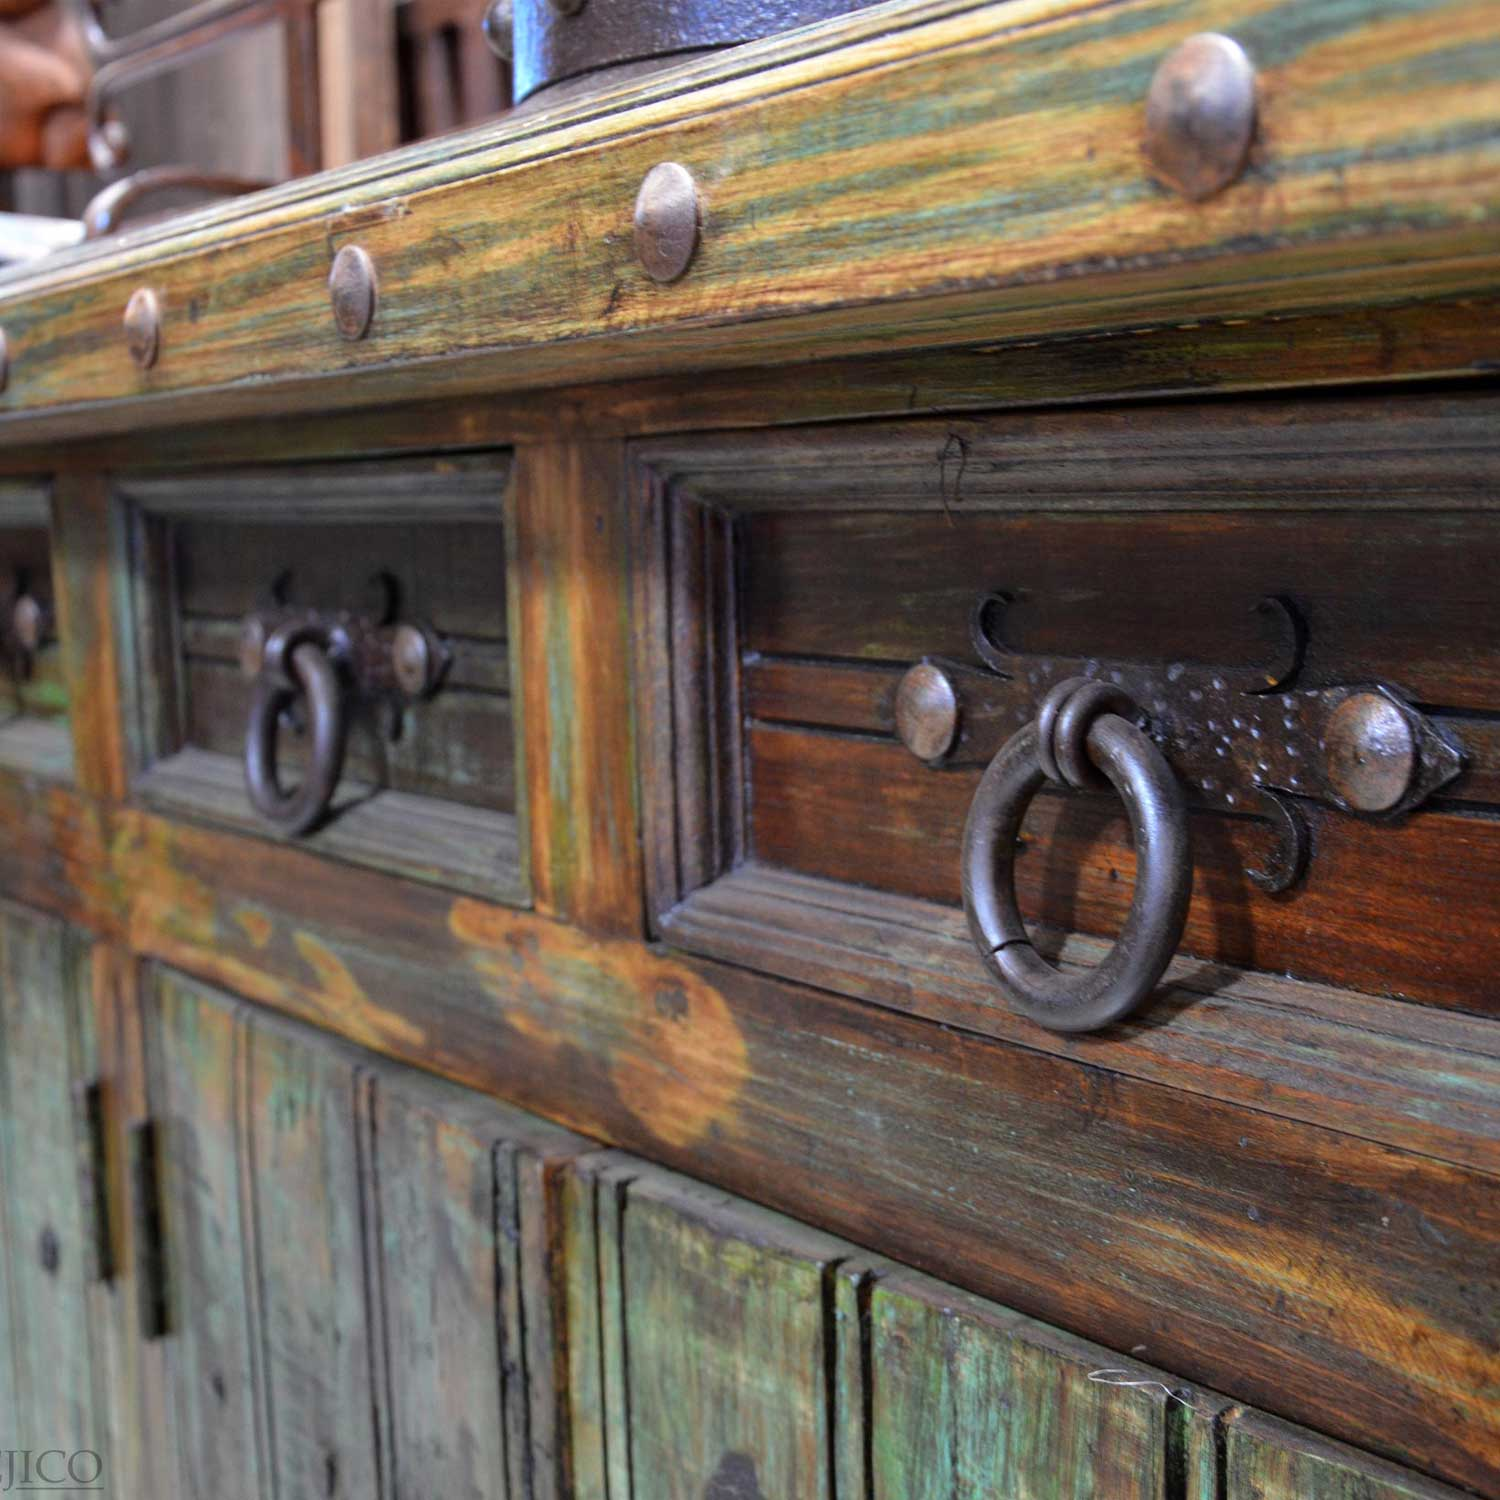 rustic kitchen cabinet knobs and pulls kitchen cabinet knobs Rustic Cabinet Handles Kitchen